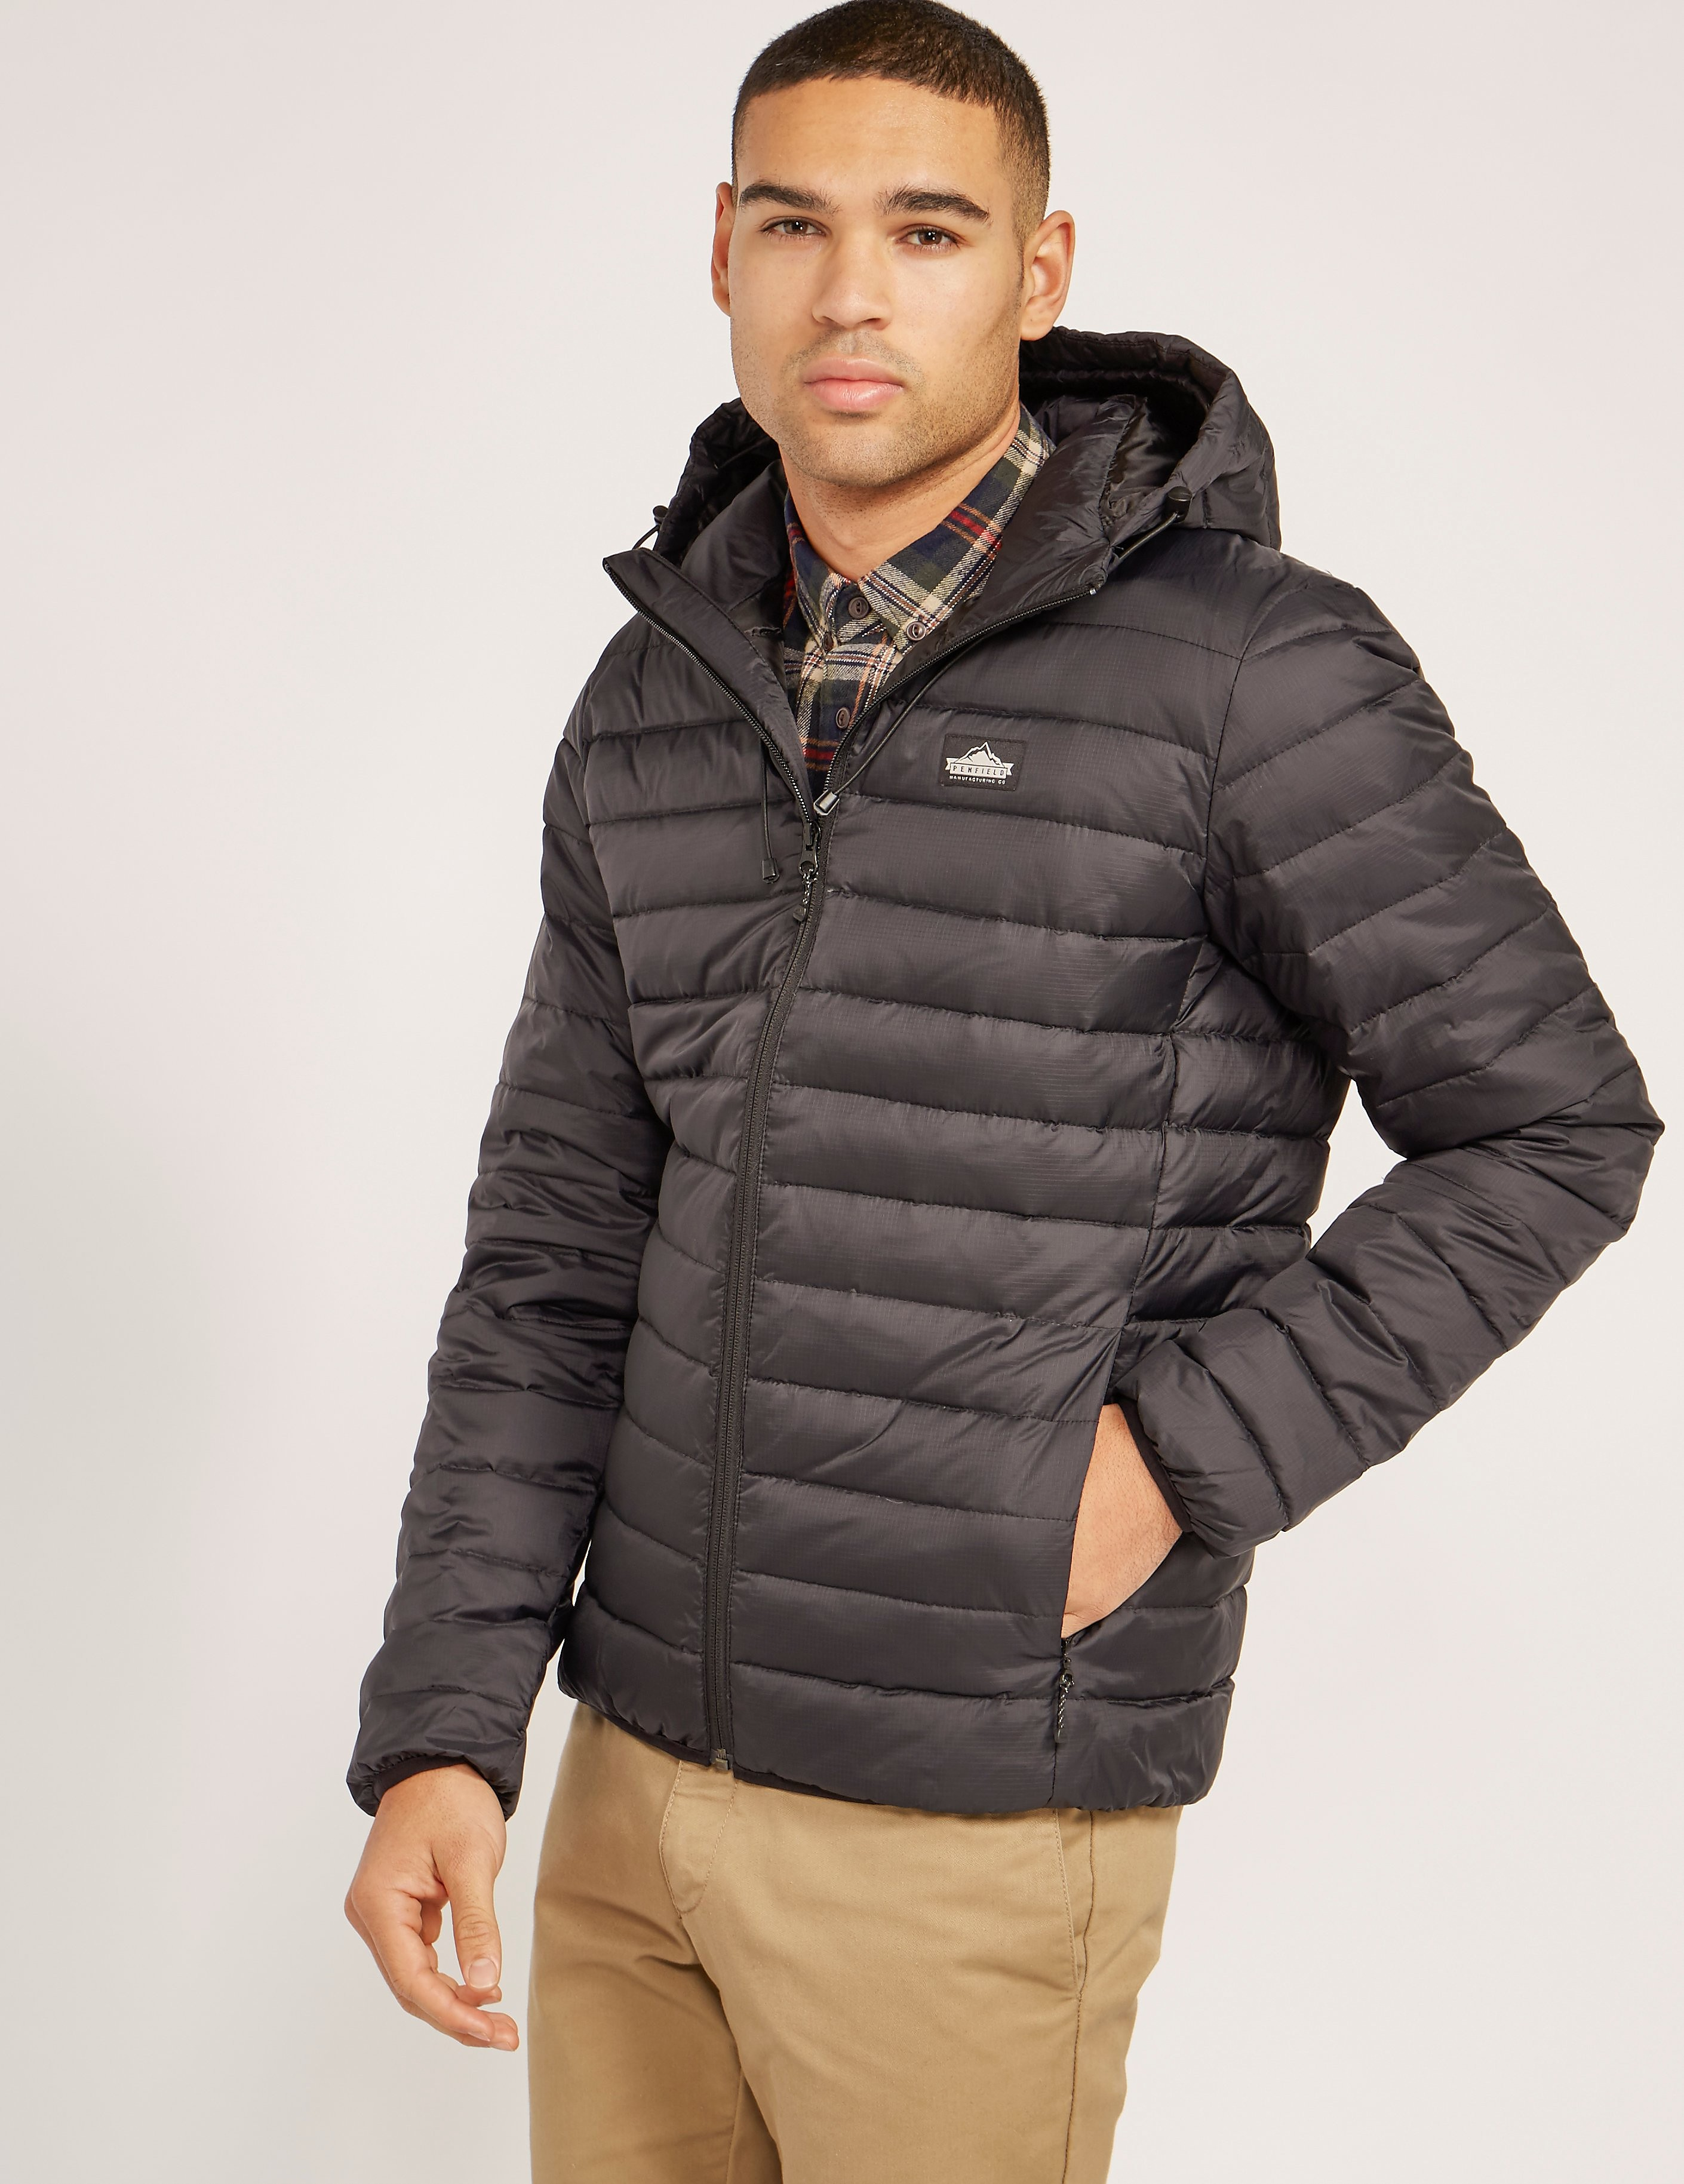 Penfield Chinook Jacket